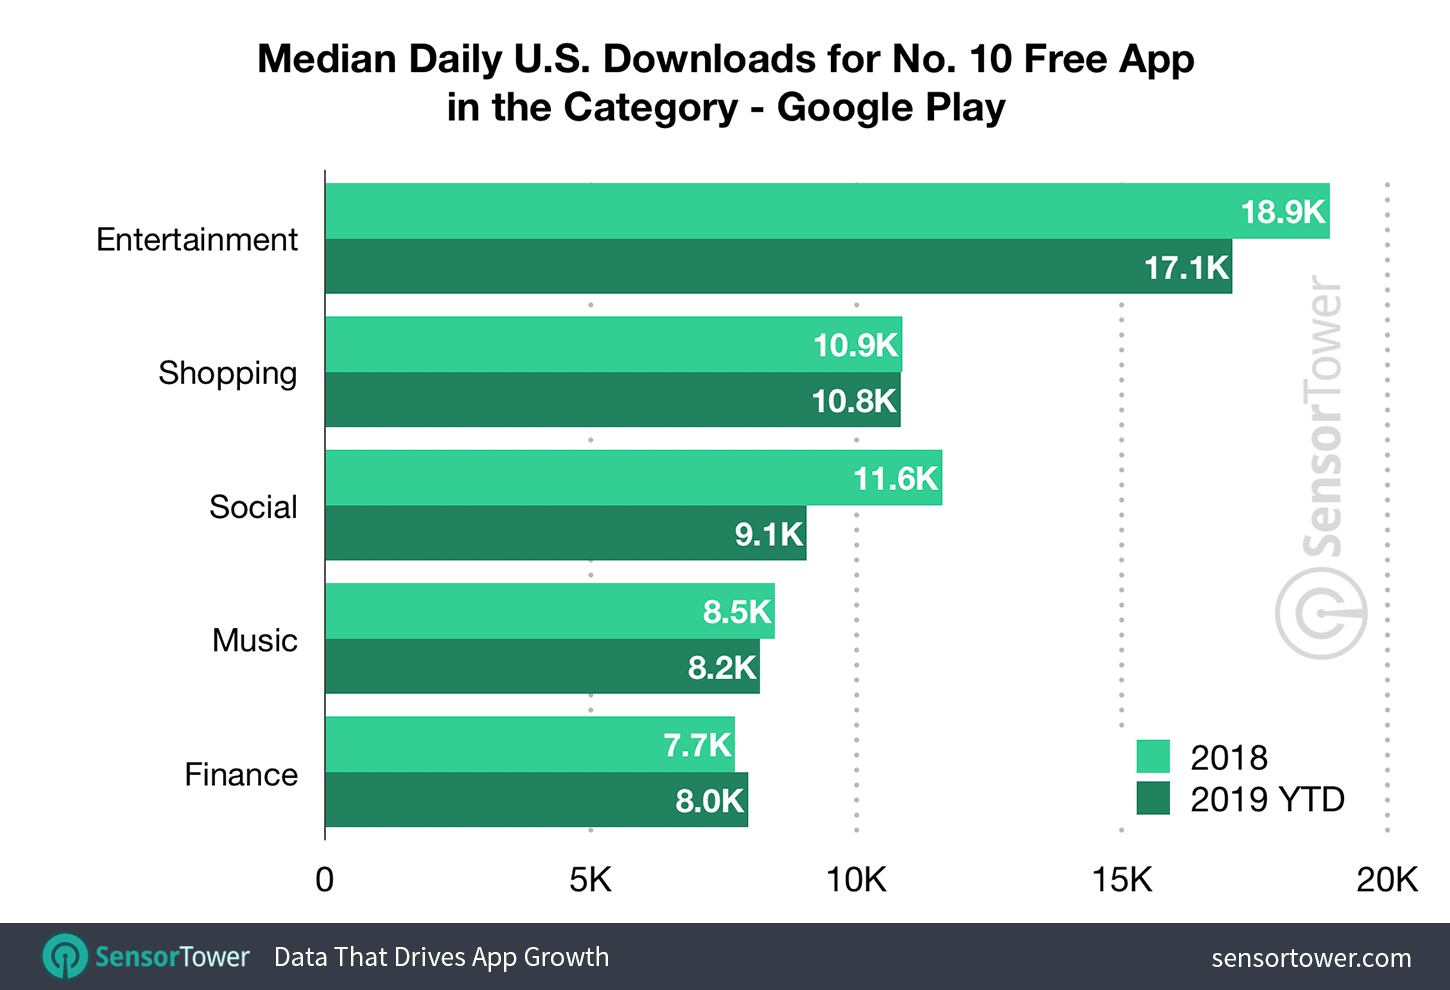 Median Downloads to Reach the Top 10 on the U.S. Google Play Store by Category - First-Half 2019